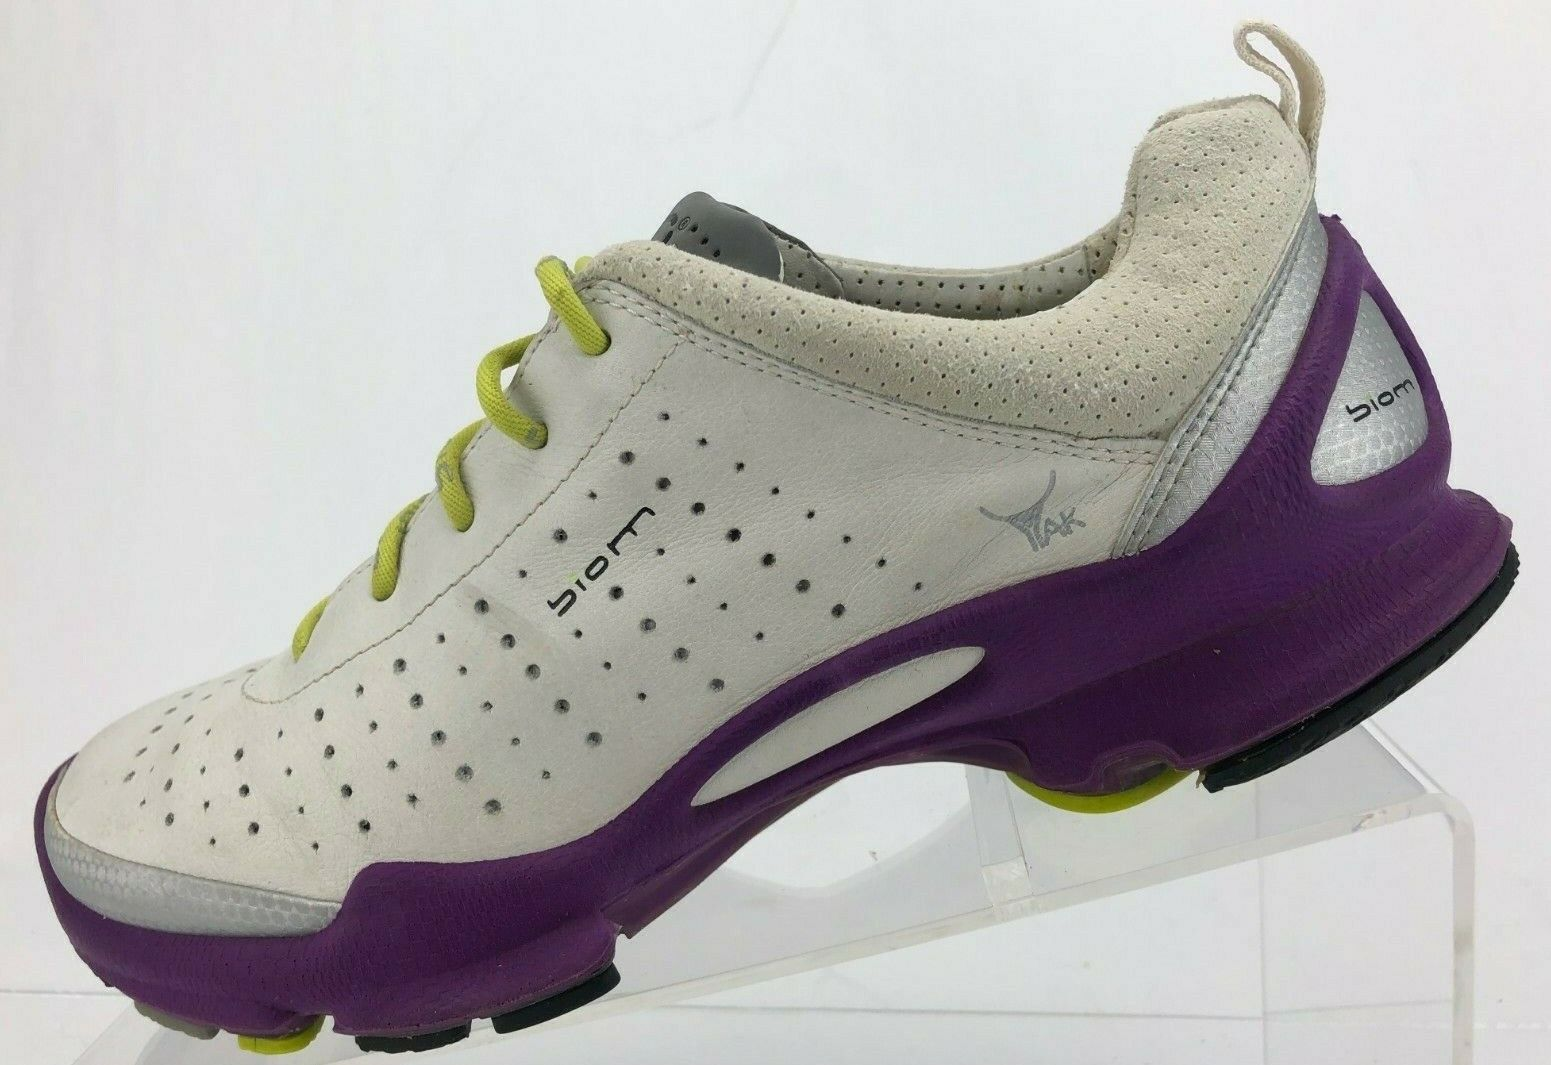 Ecco Biom Yak Natural Motion Sneakers White Purple Hiking shoes Womens 38 7,7.5